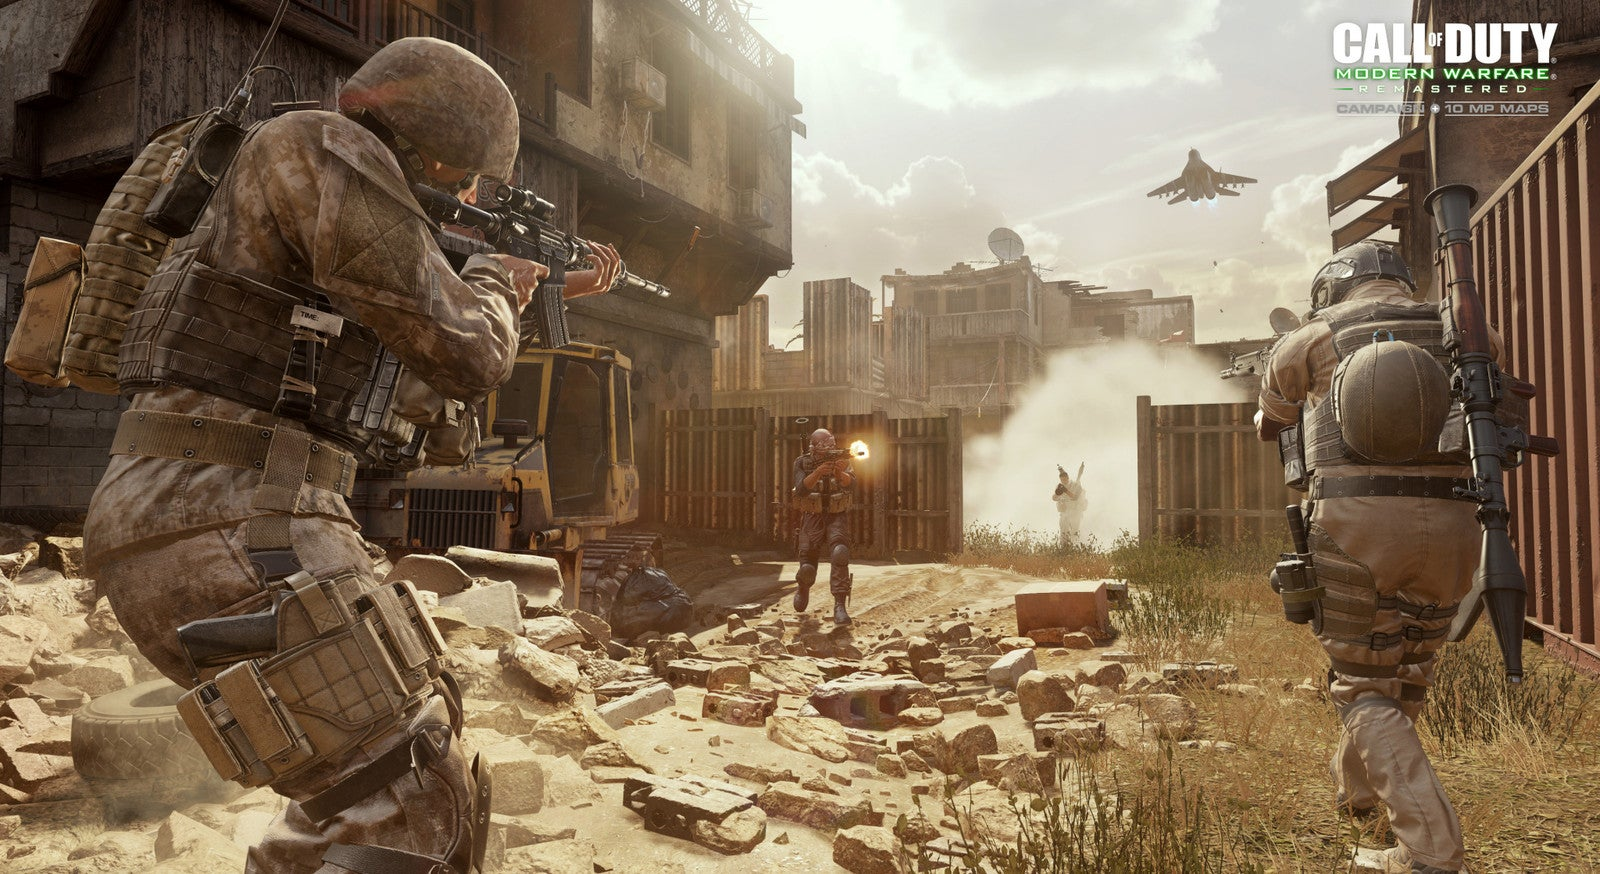 Activision Has Big Layoffs Despite Surpassing Financial Targets